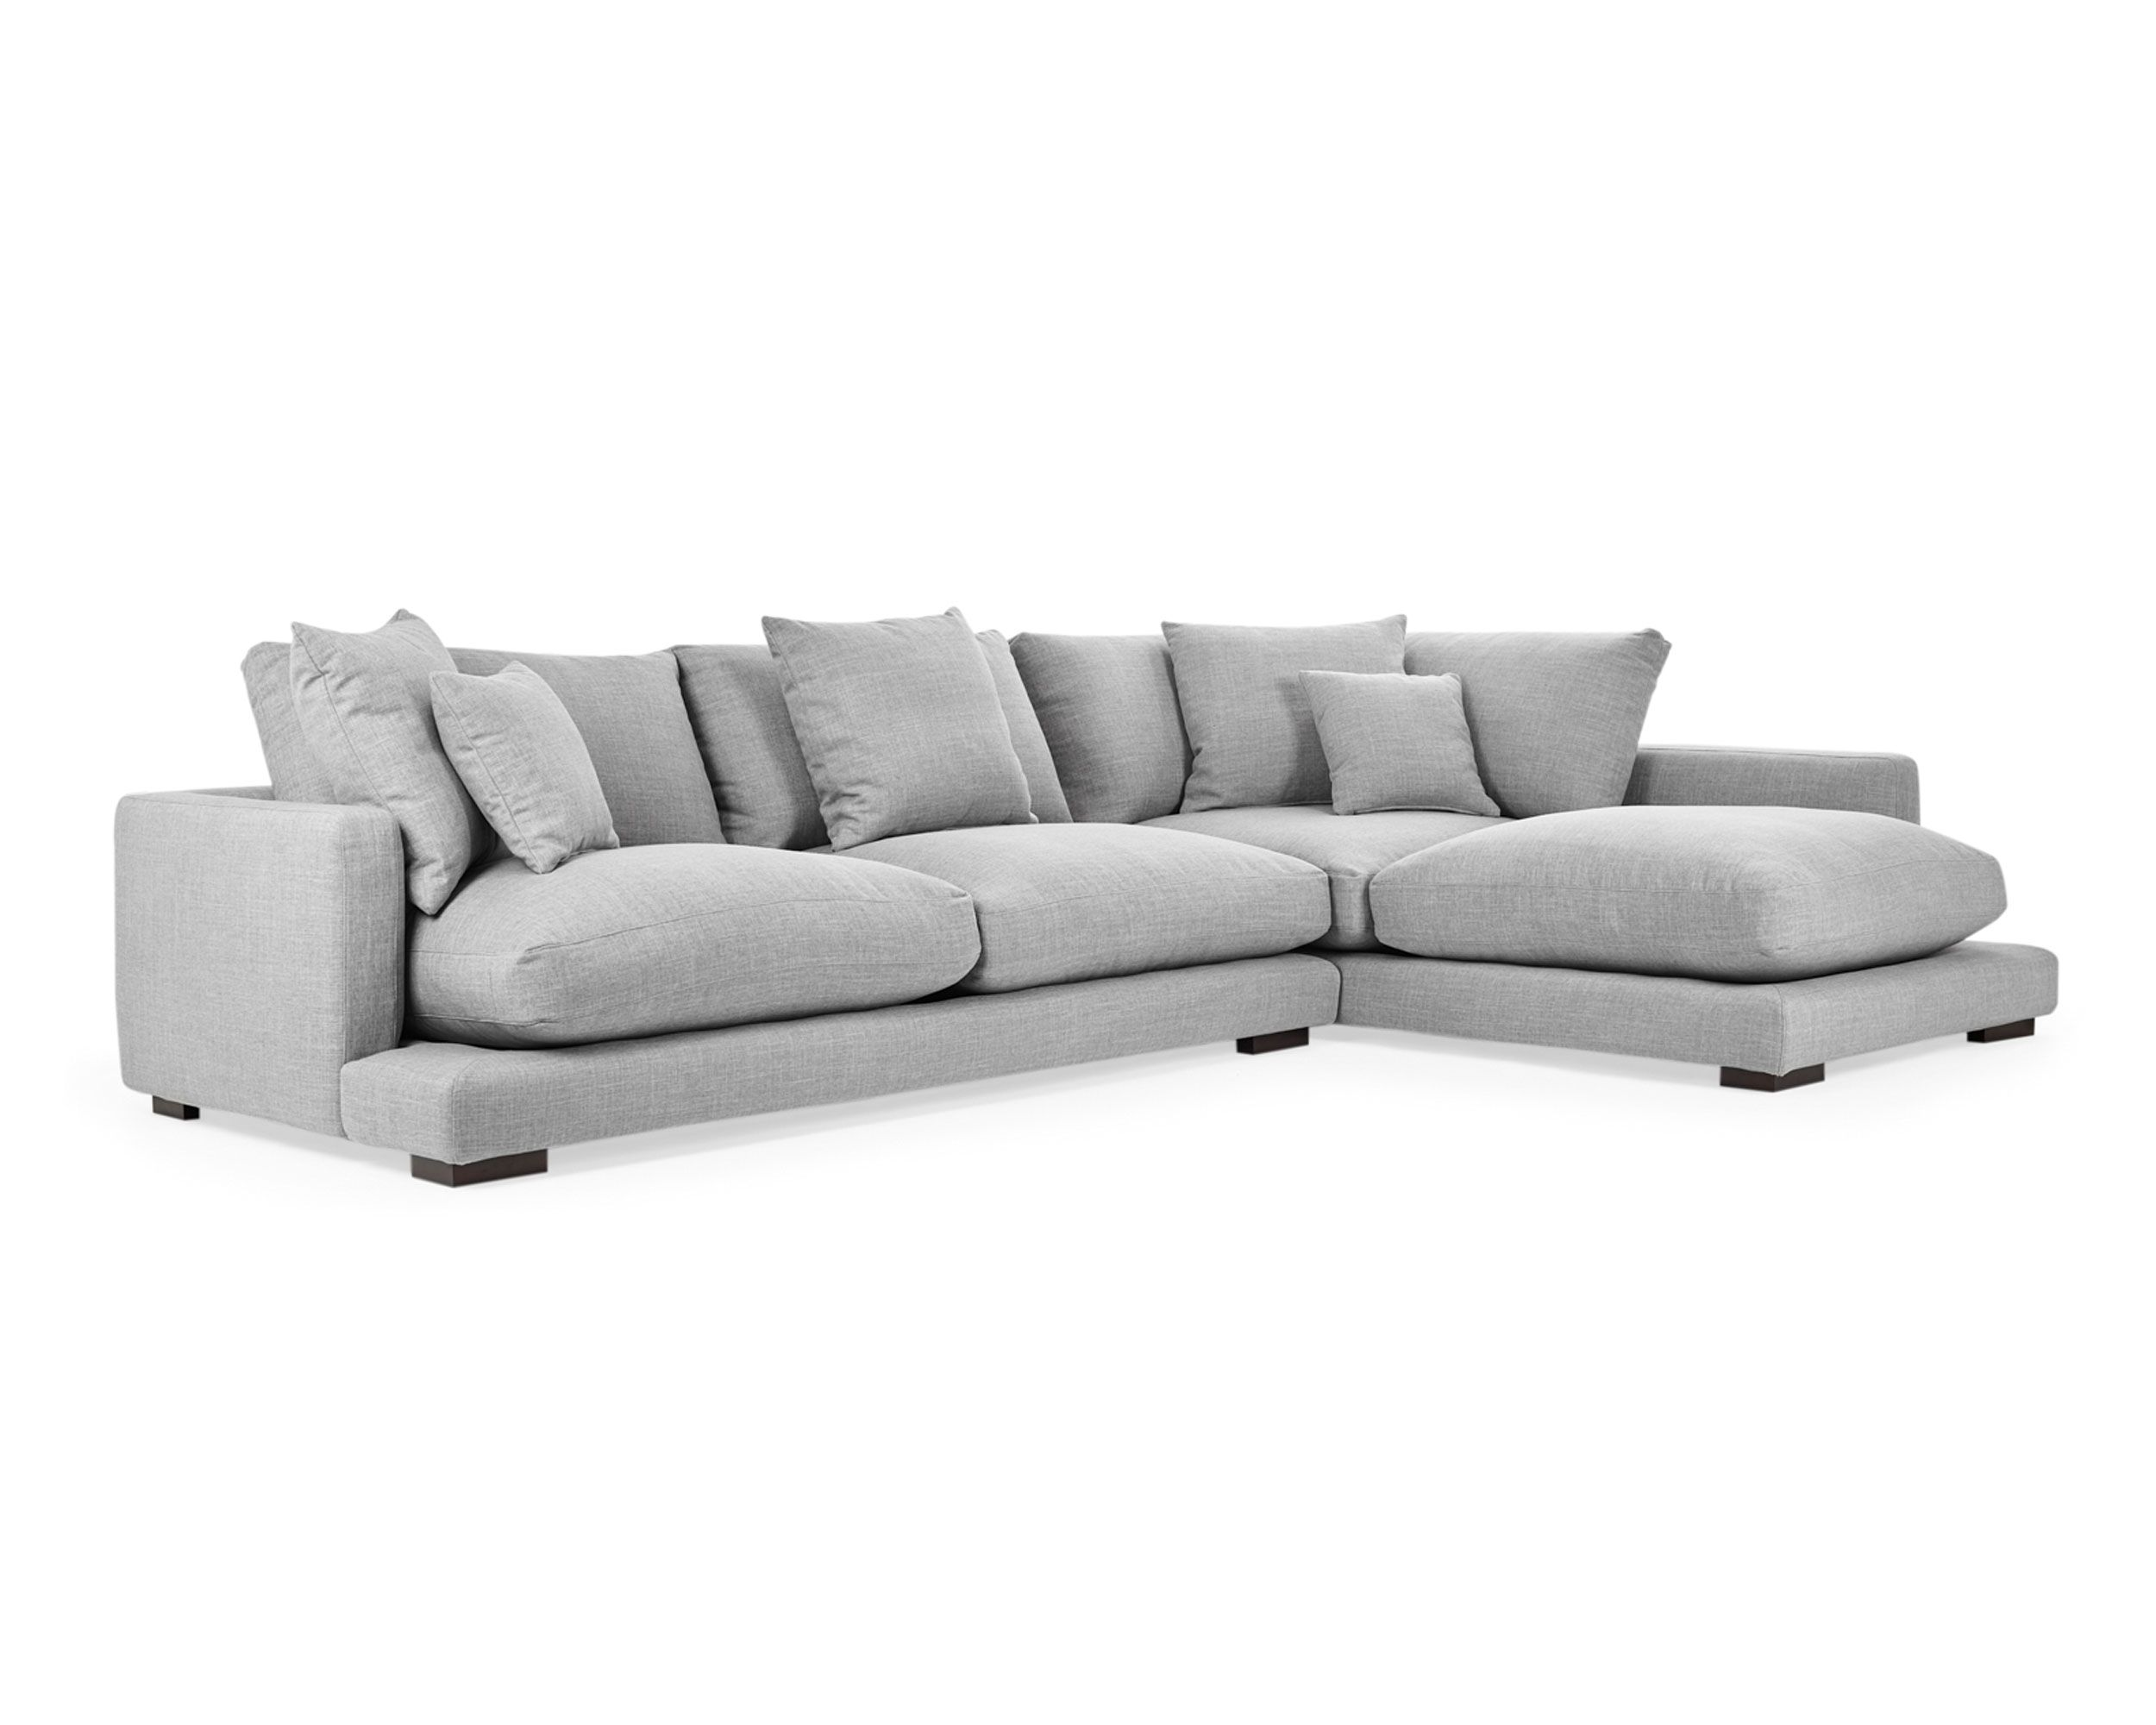 Our Long Beach Sofa Creates An Alluring Look In Spacious Lounge Rooms. The  Generous 3 Seat Modular U0026 Chaise Is Substantially Deeper And More Plush  Than Simi